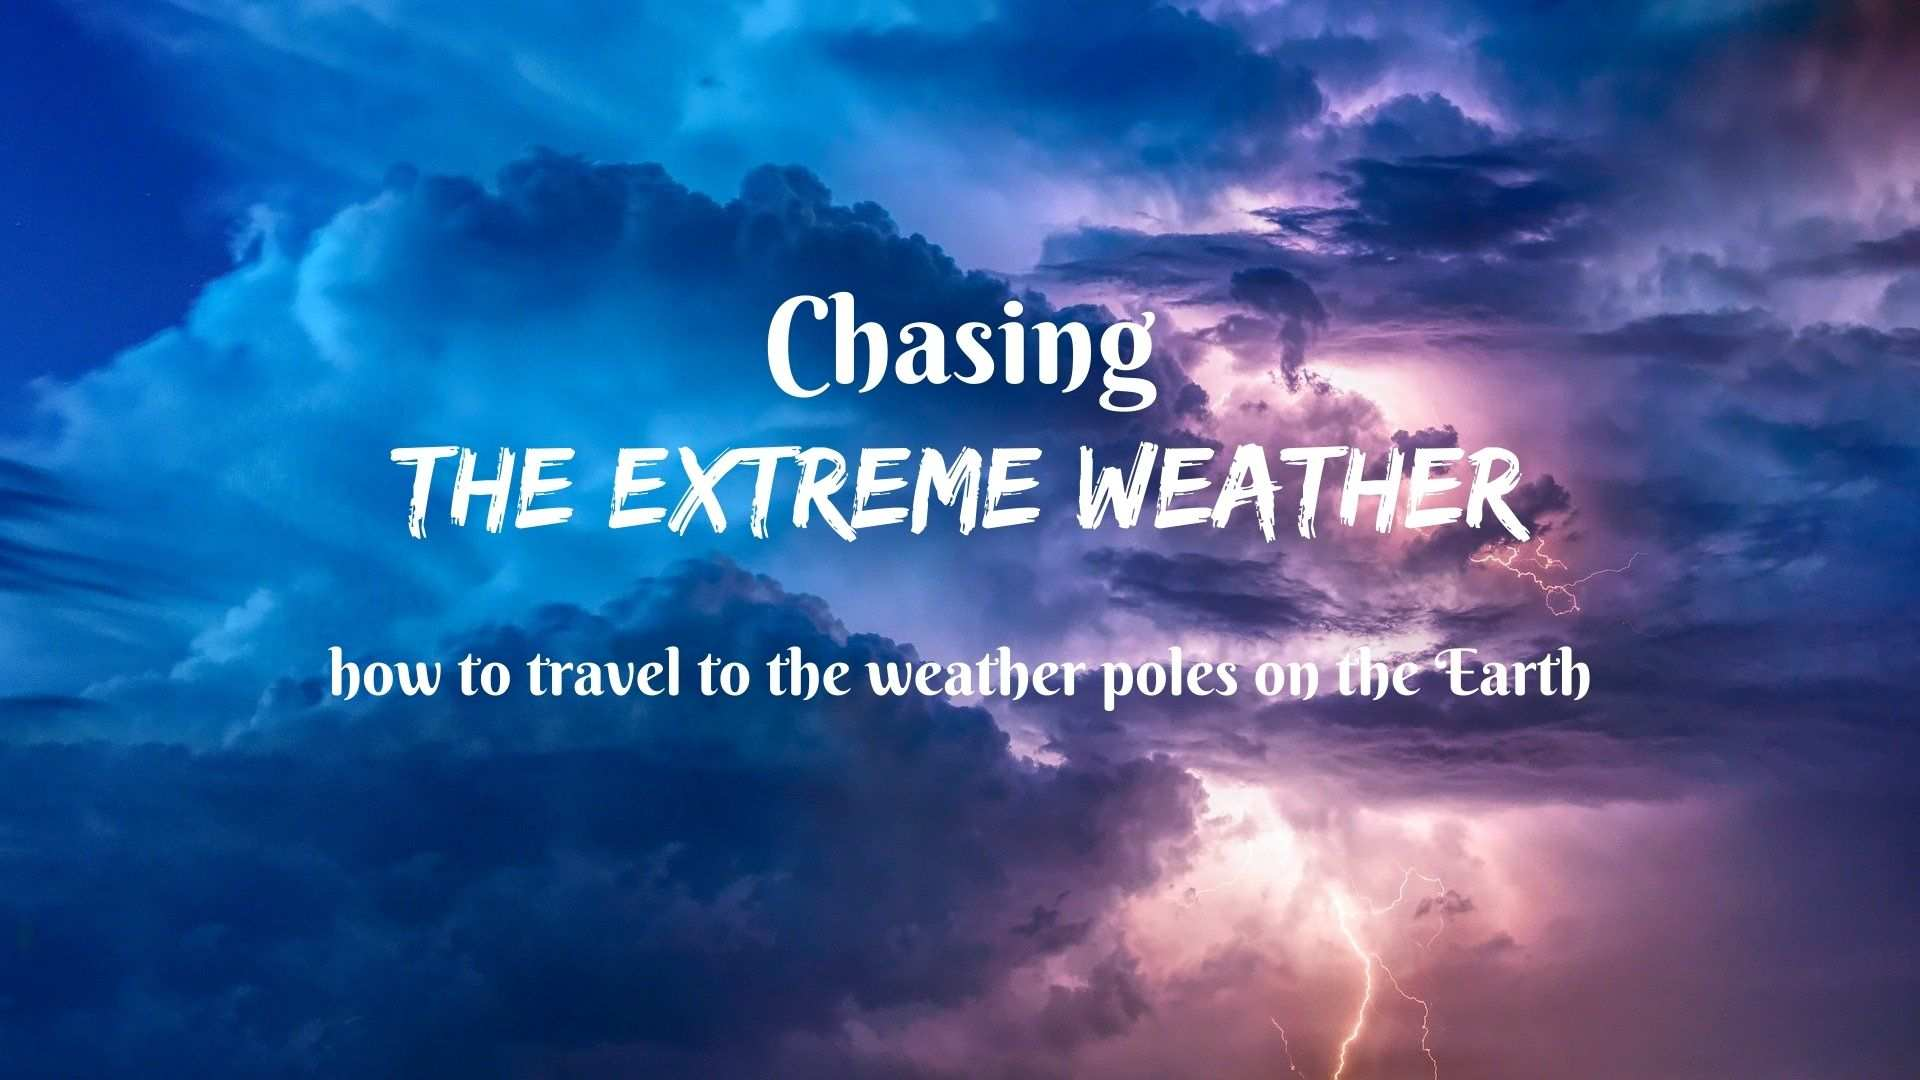 Chasing the extreme weather- how to travel to the weather poles on the Earth